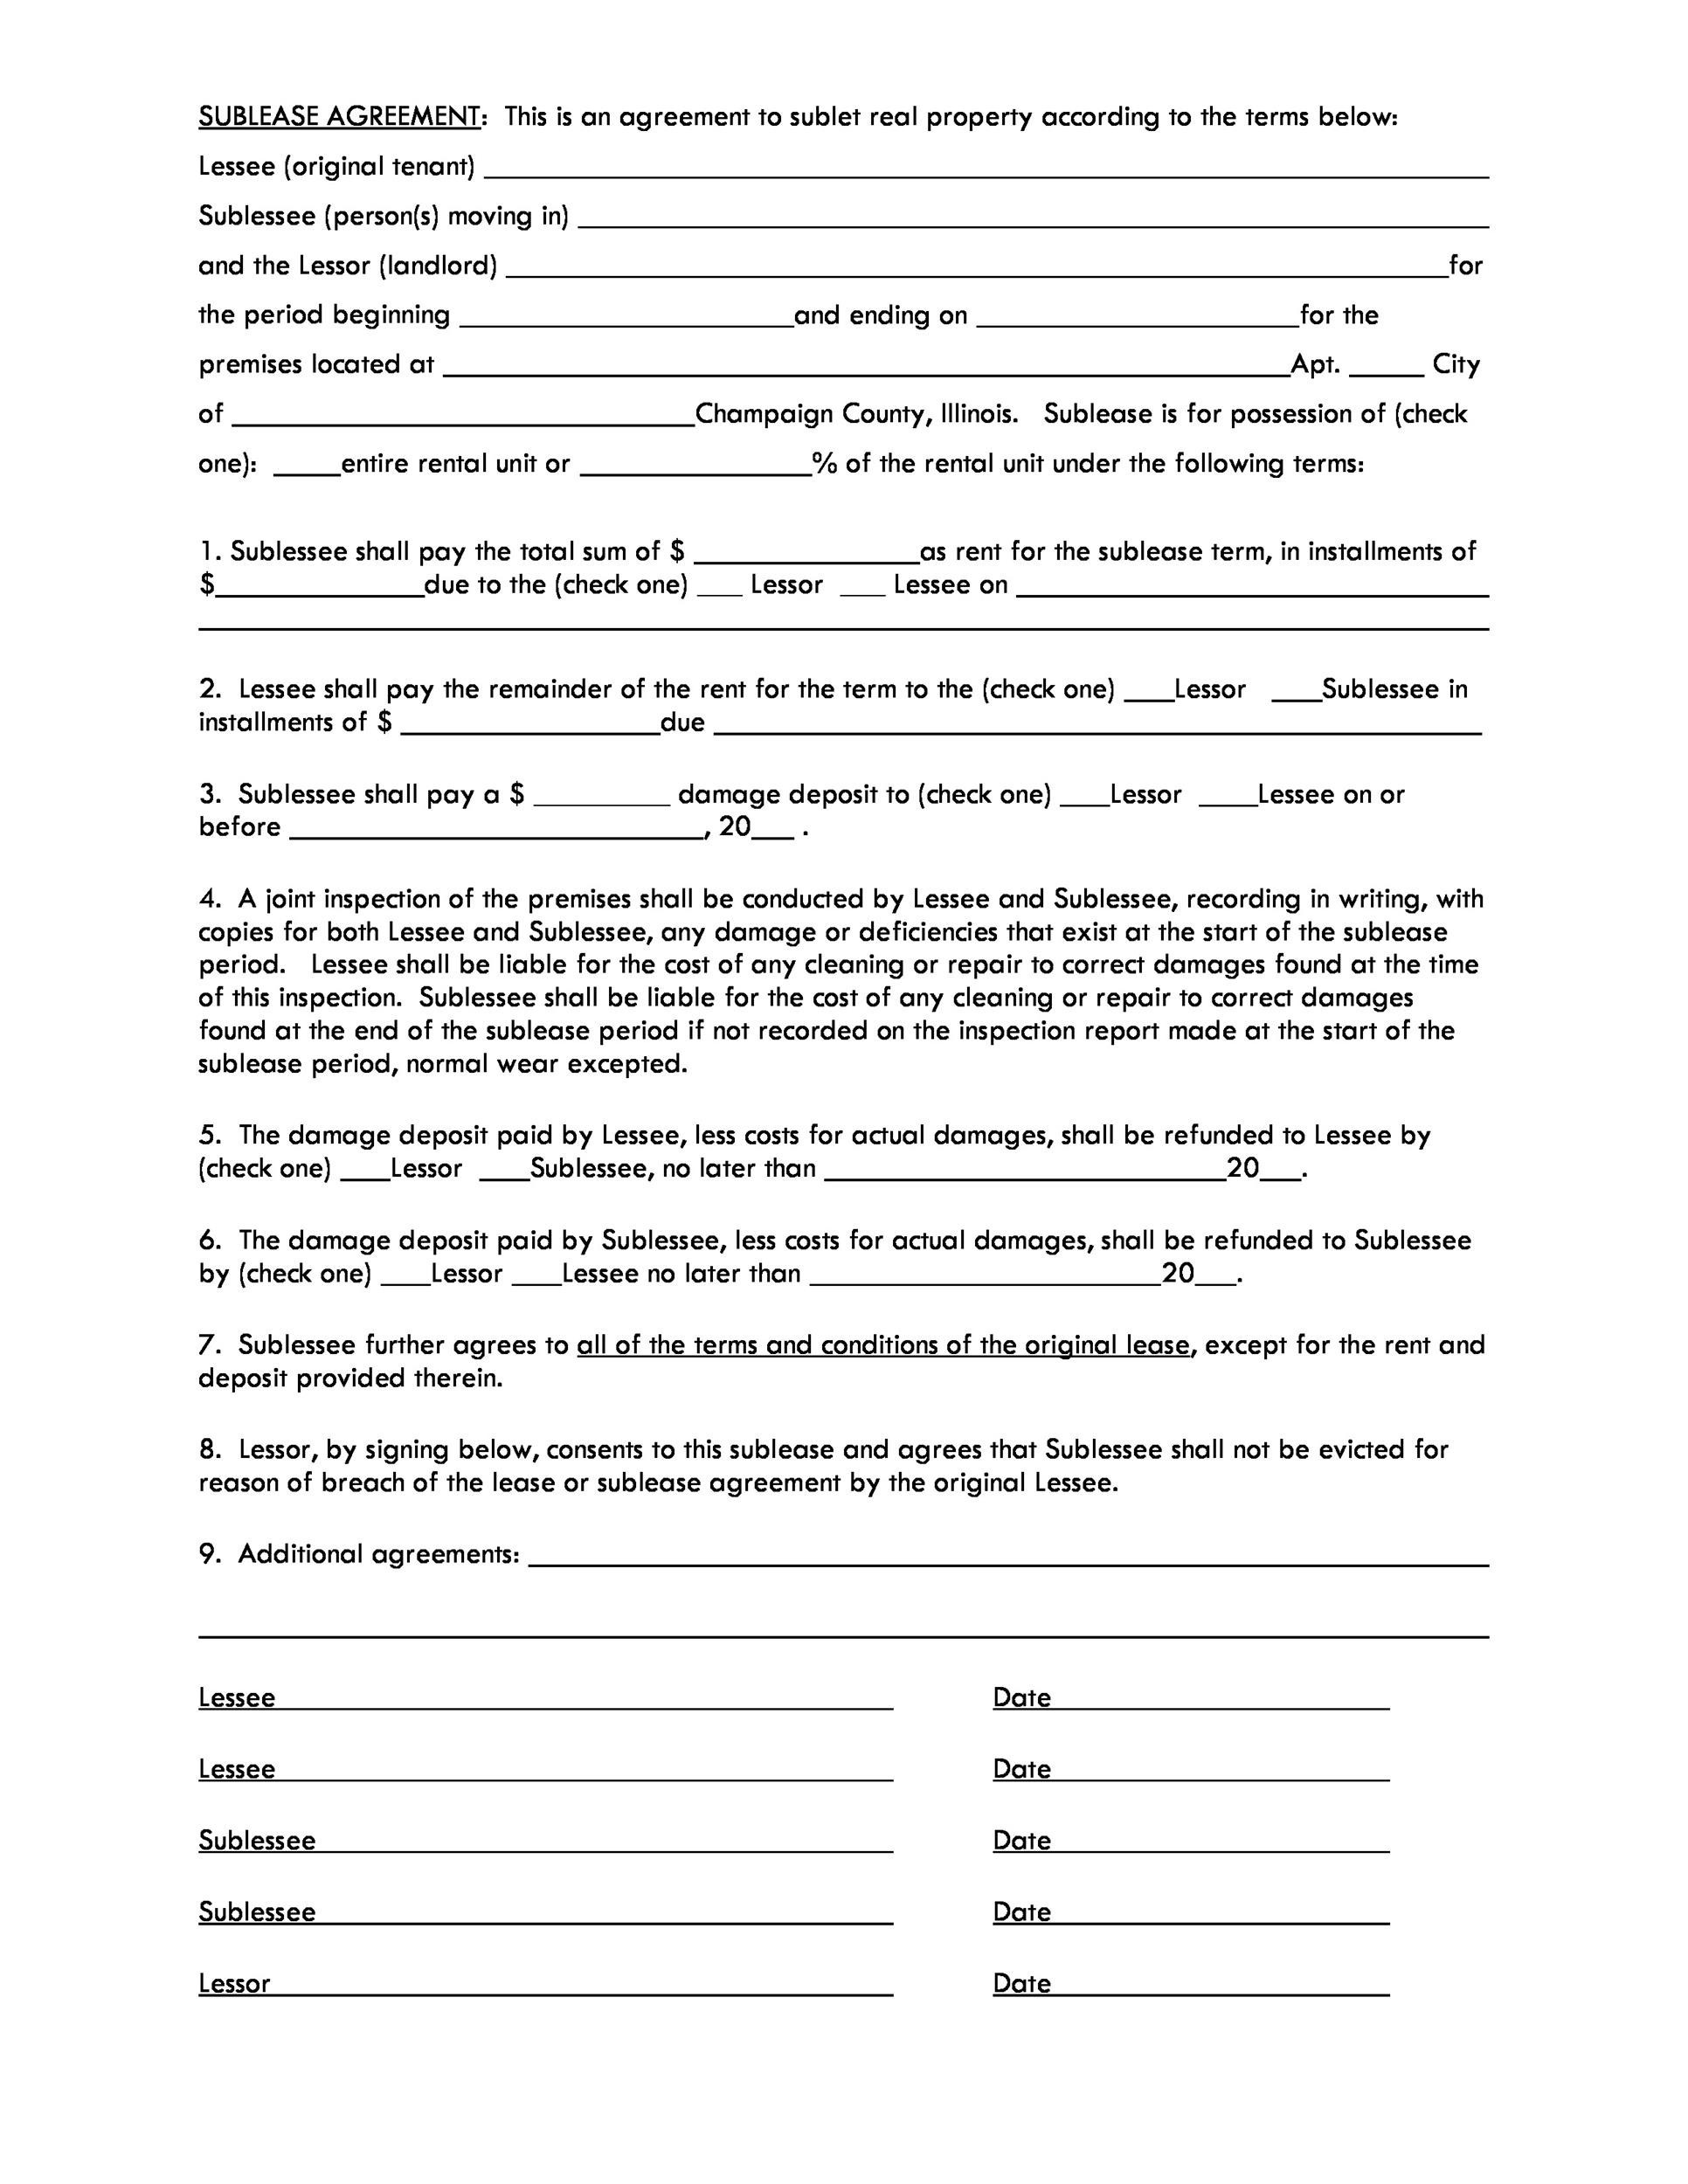 Payment Arrangement Agreement Roommate Agreement Template